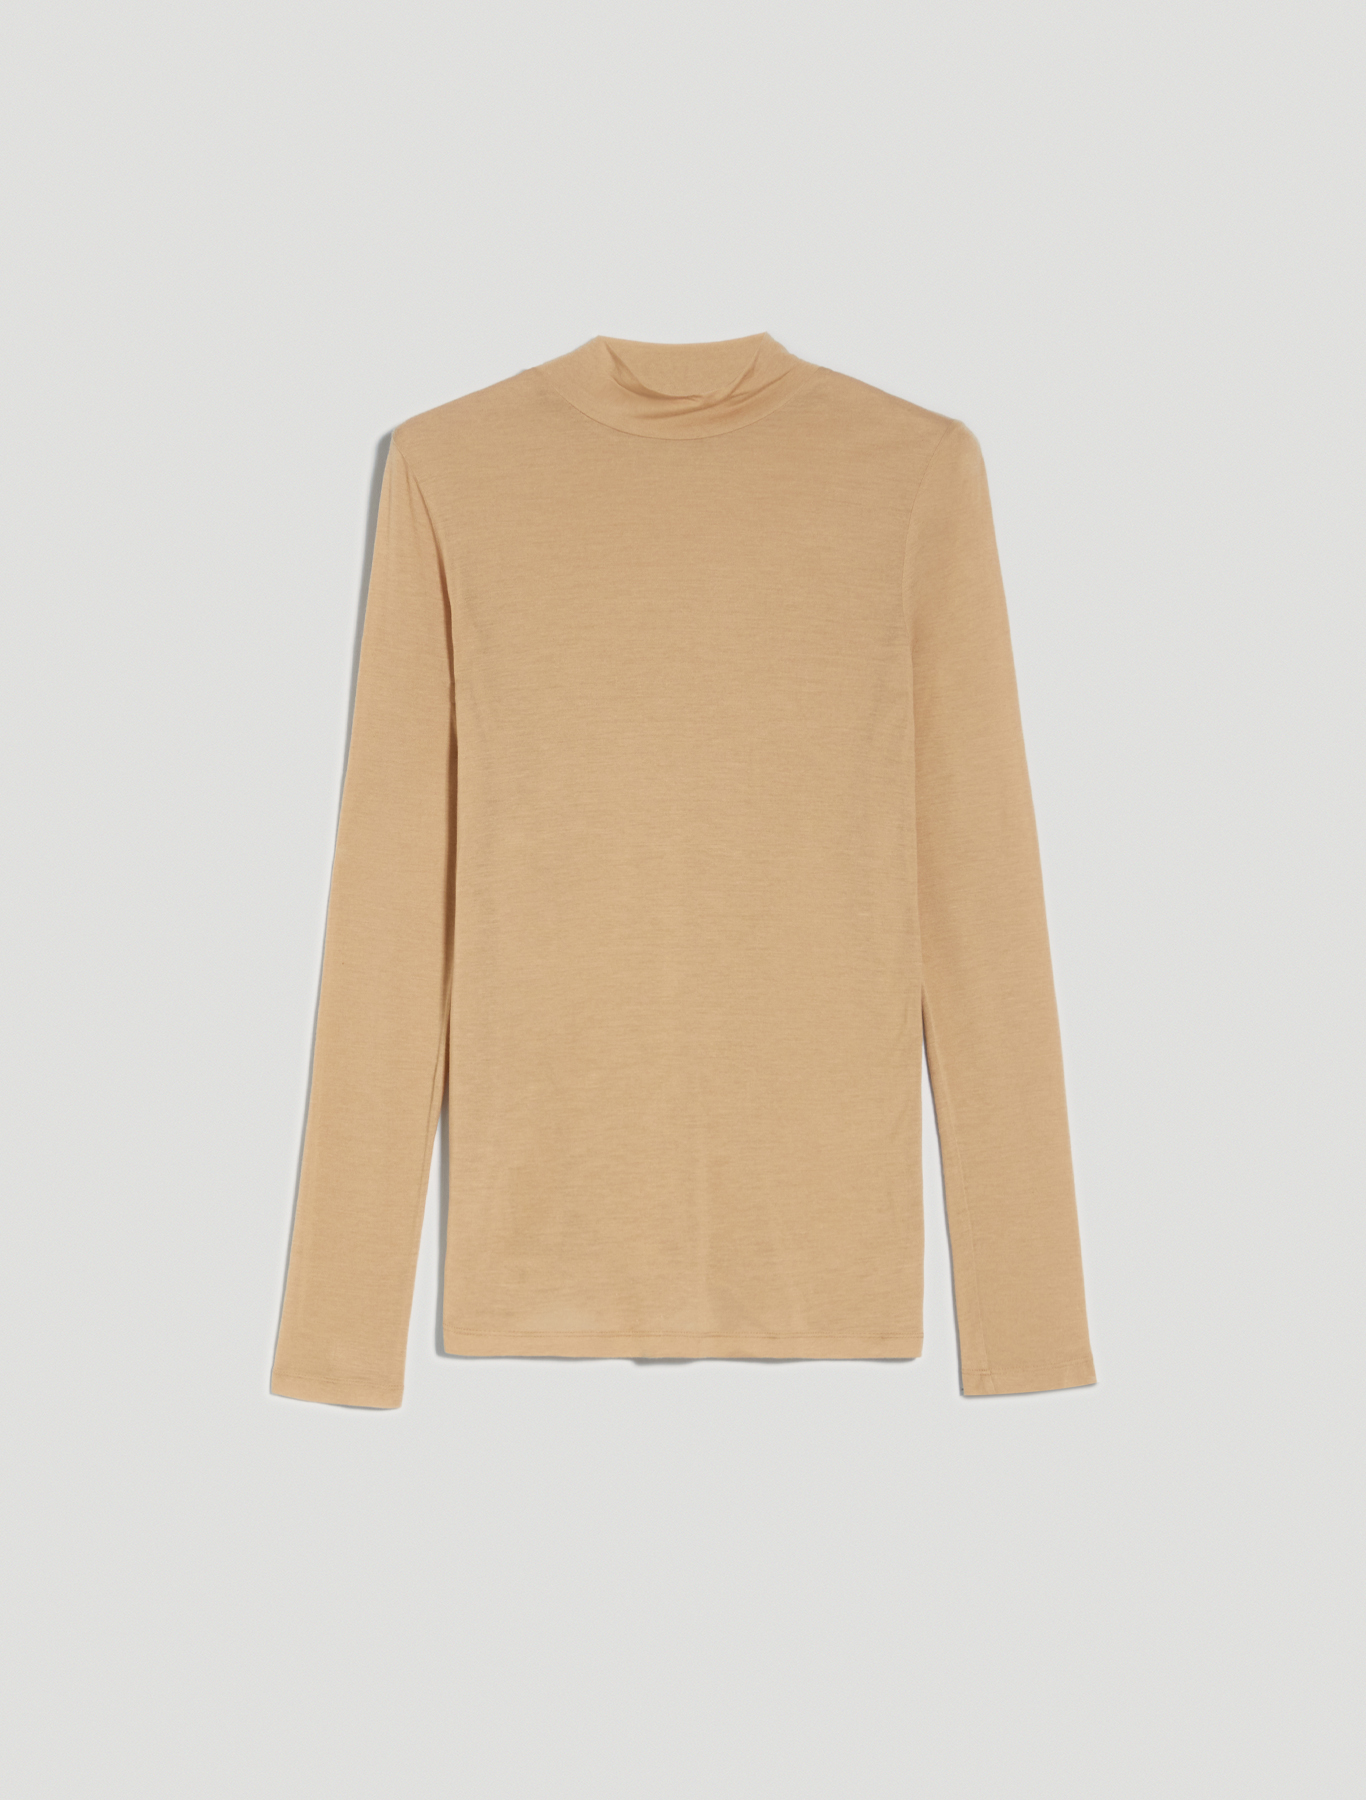 Micromodal and cashmere polo neck - beige - pennyblack